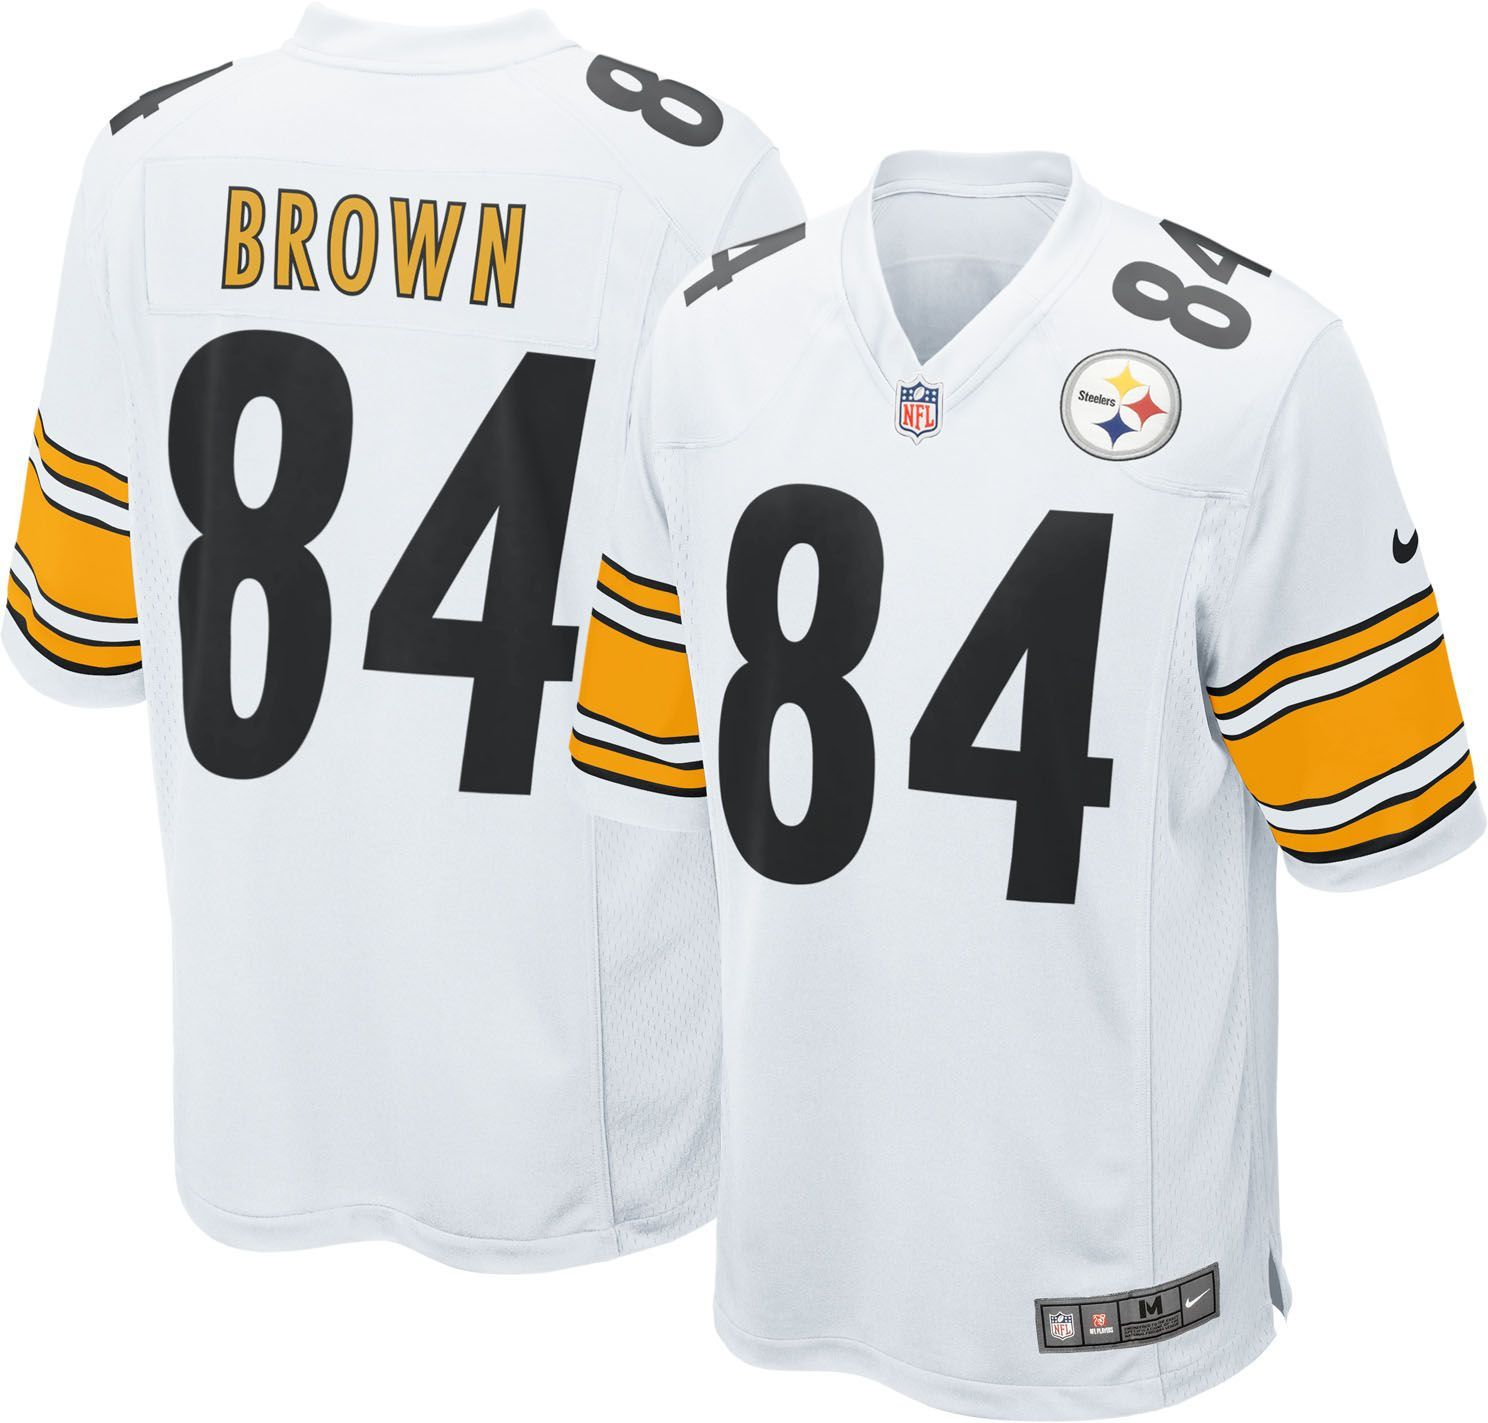 hot sale online 30d9e 1a7a7 Nike Men's Away Game Jersey Pittsburgh Antonio Brown #84 ...